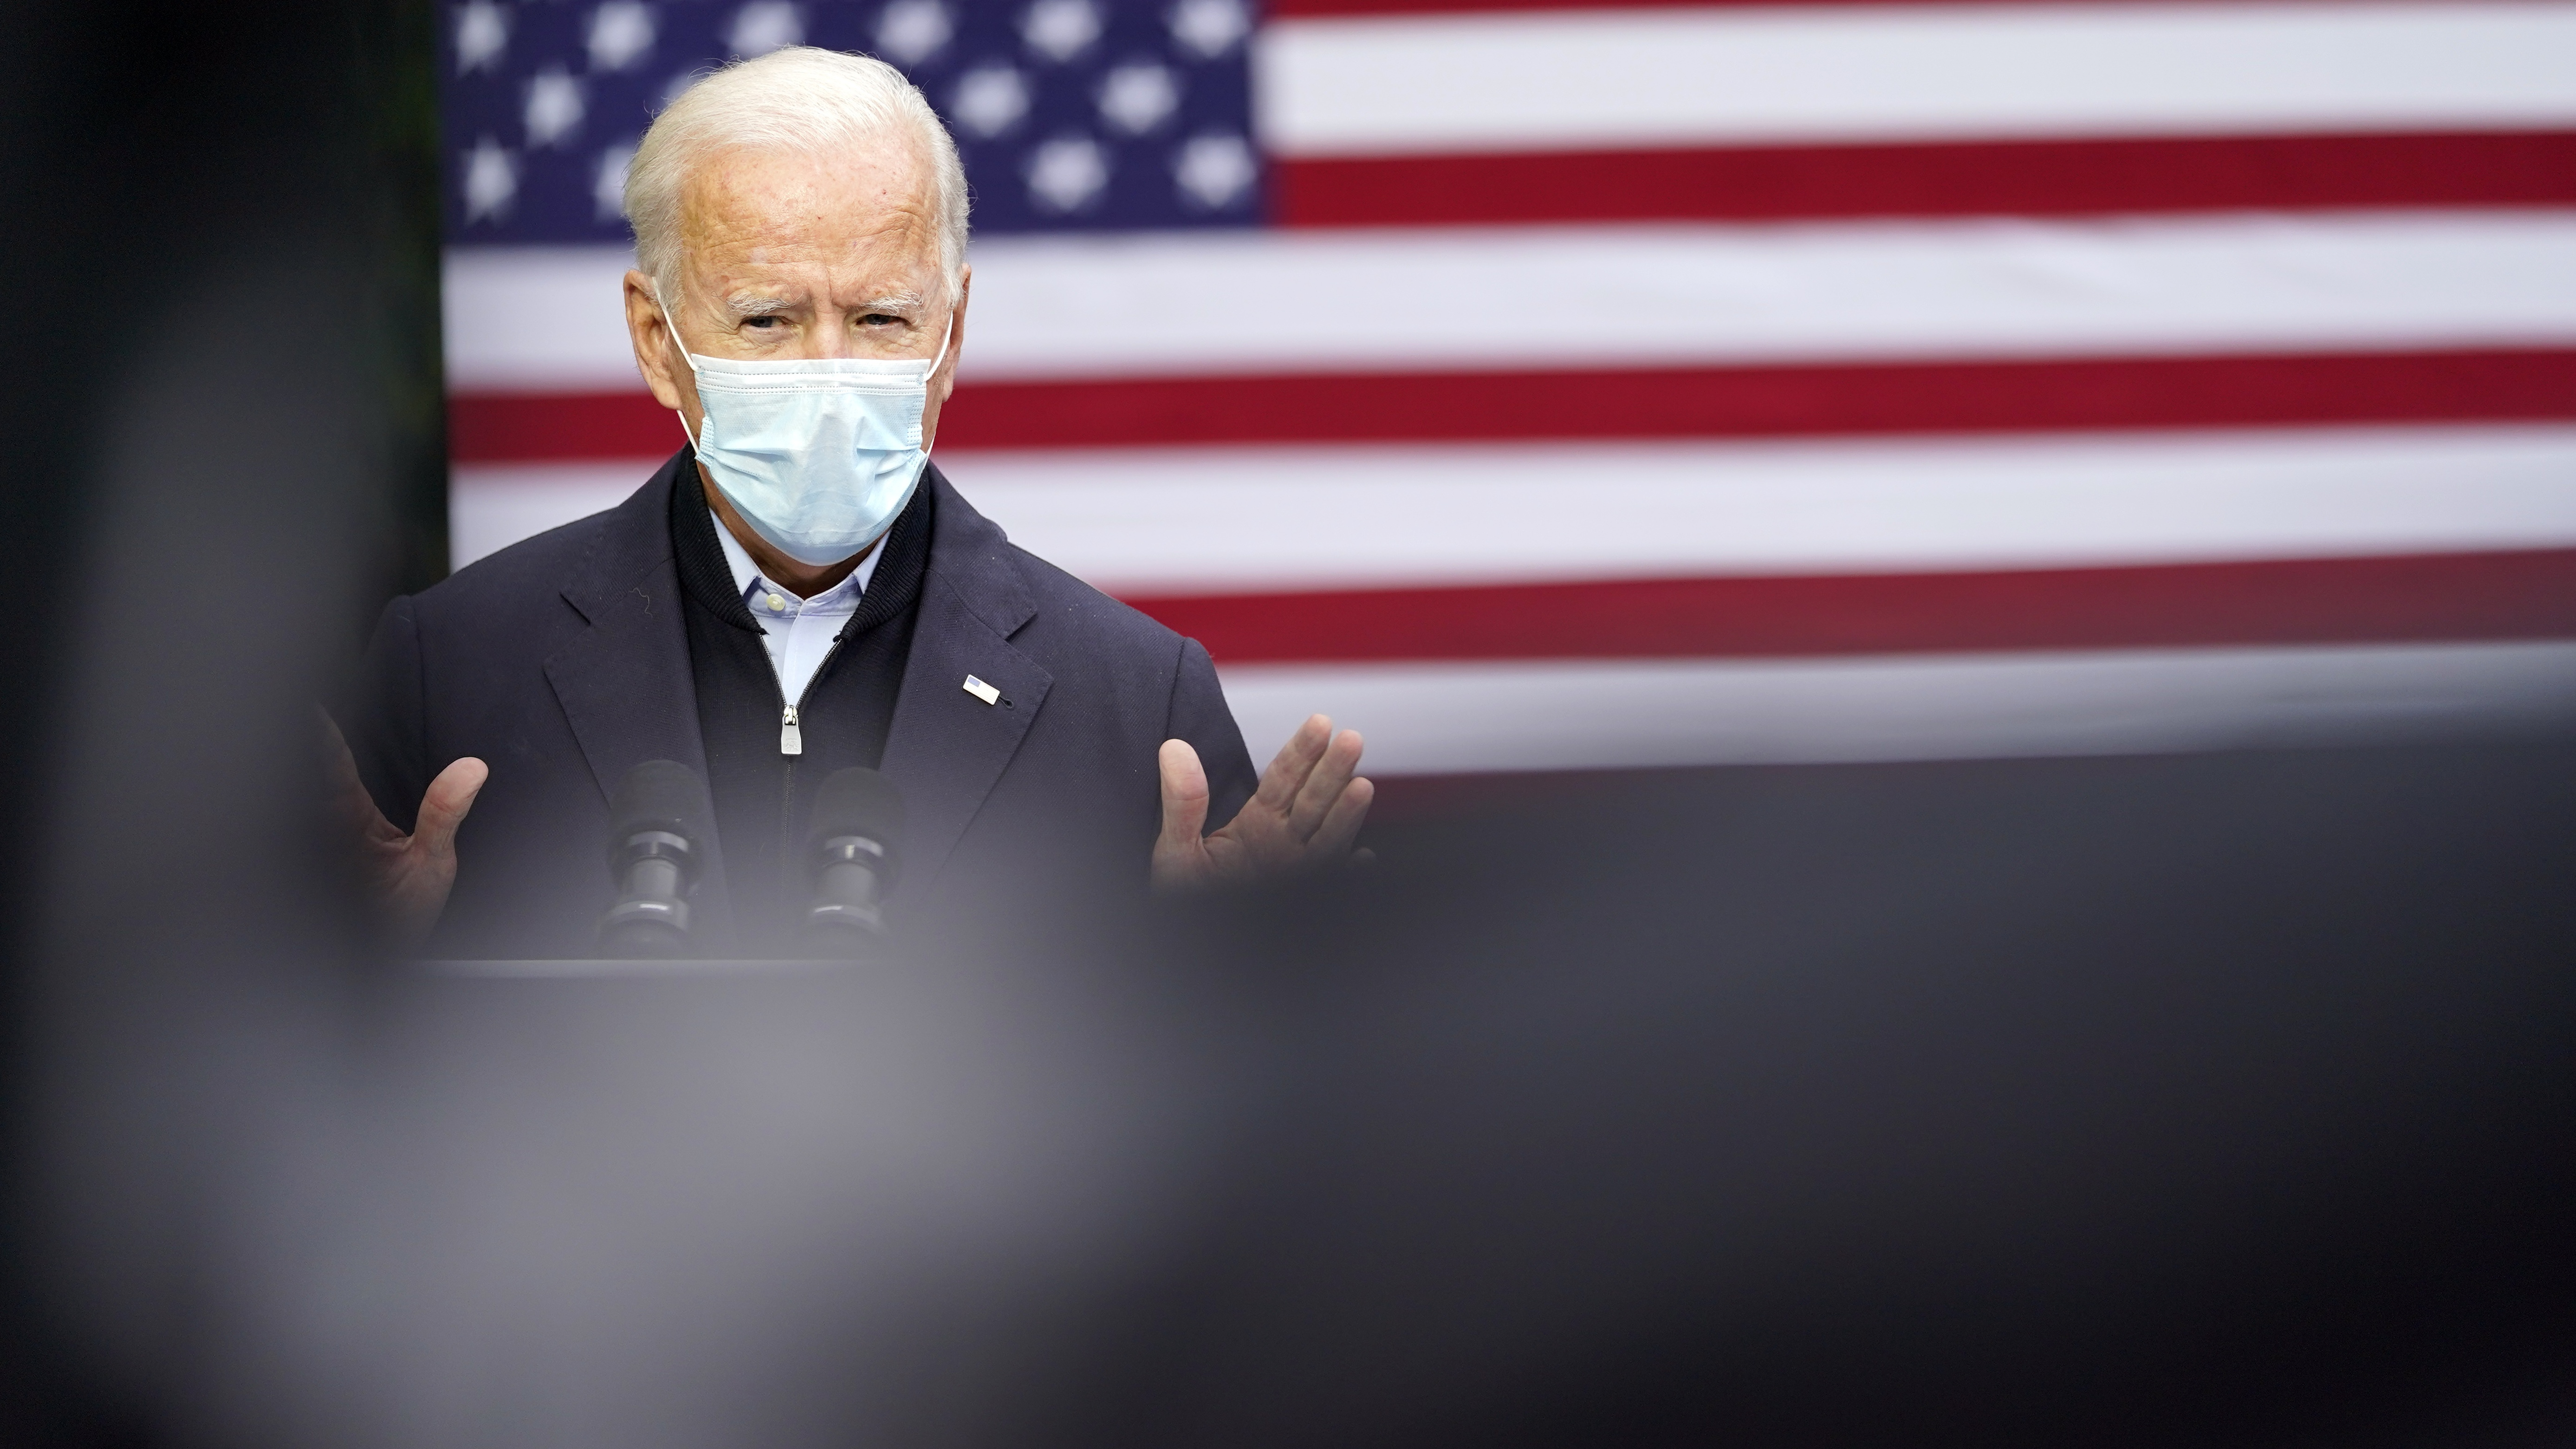 Joe Biden Aides Say Future Covid 19 Test Results Will Be Released 6abc Philadelphia